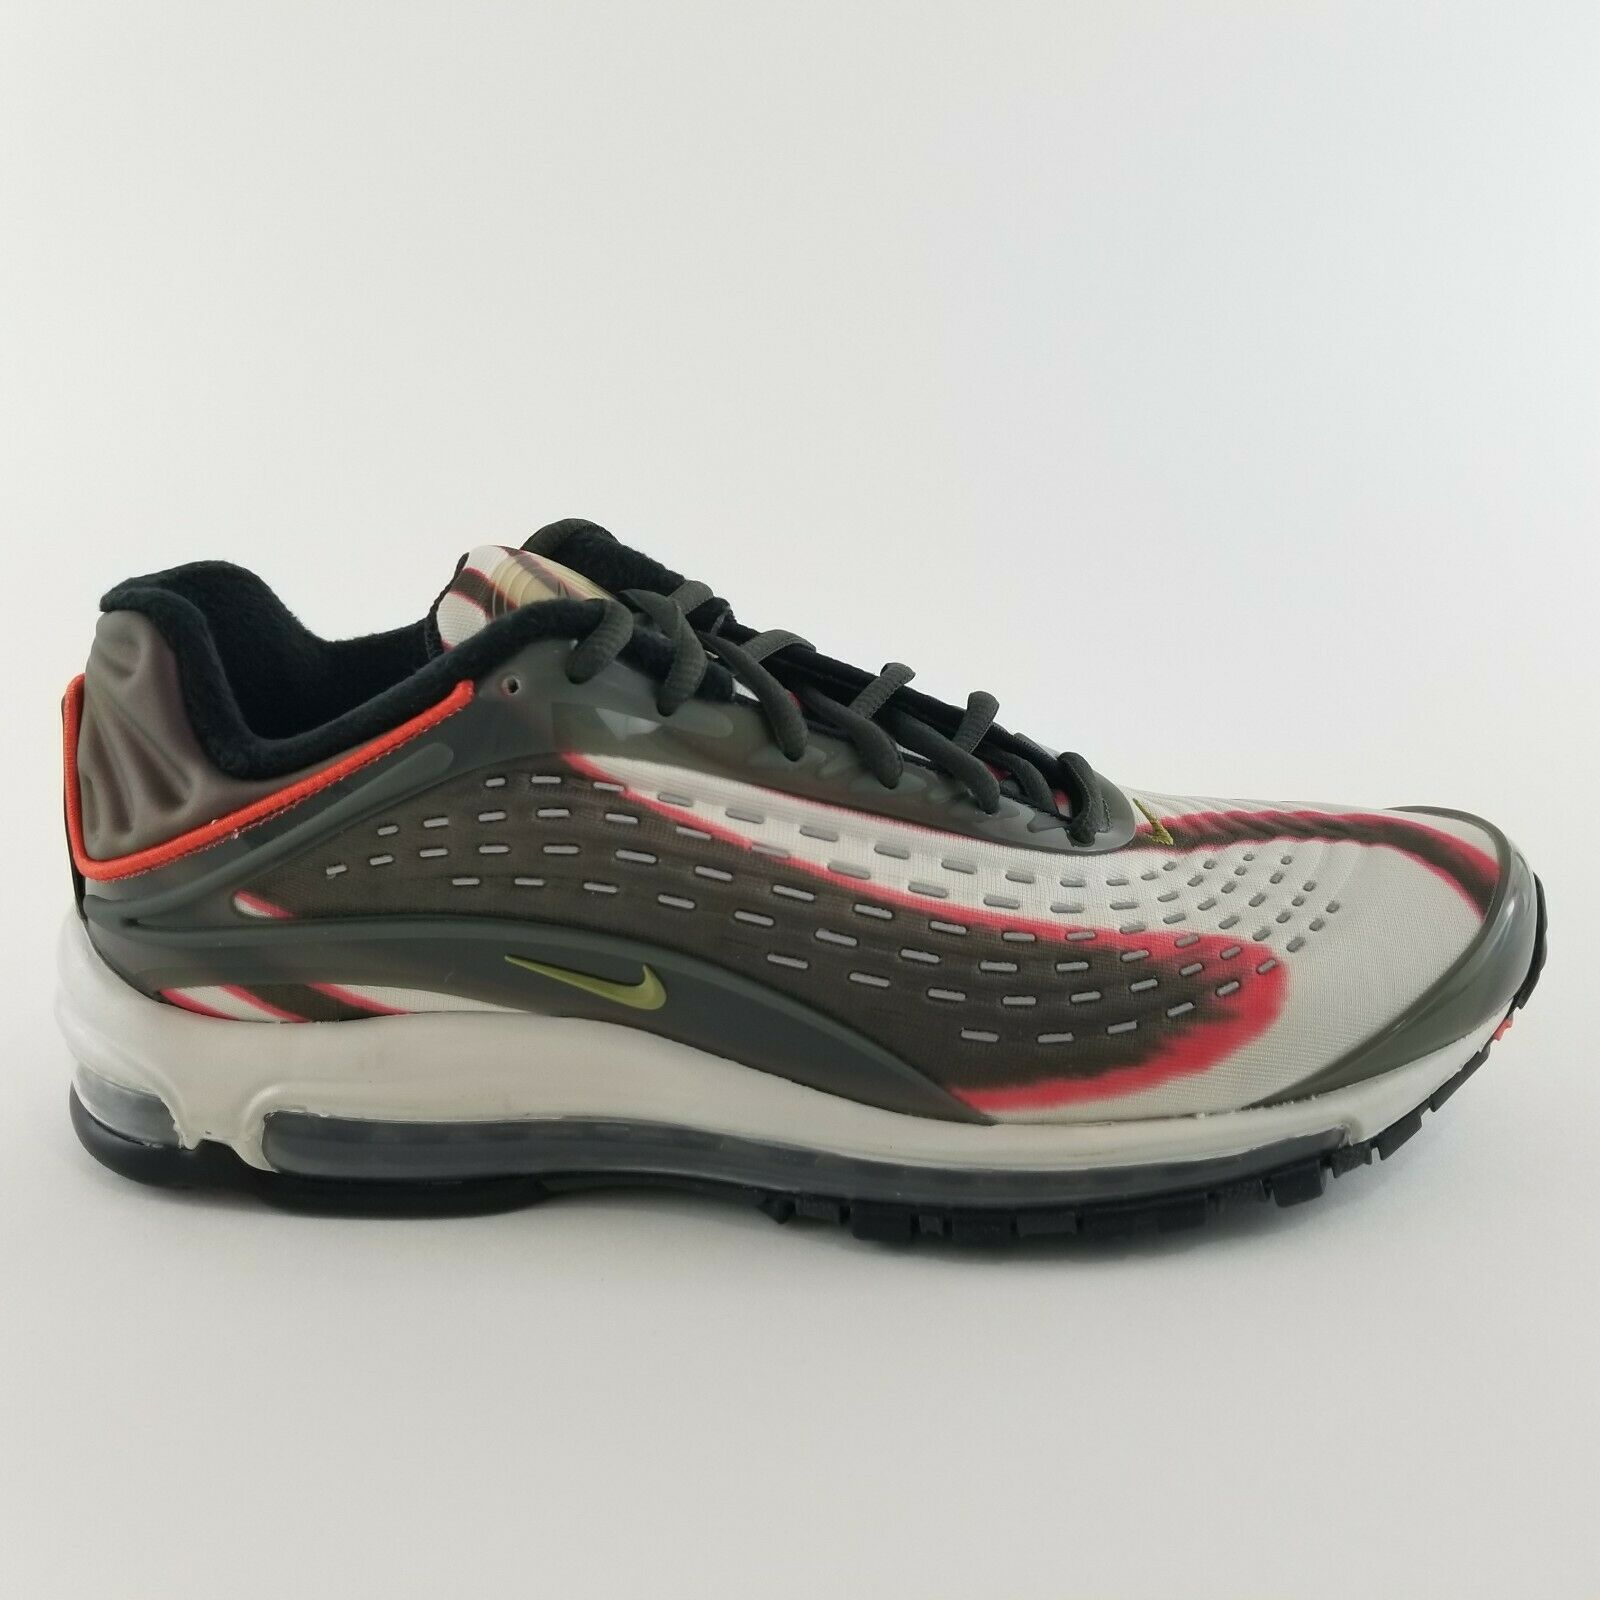 competitive price f1624 1eb6d Nike Men s Air Max Deluxe Sequoia Camper Green Running shoes AJ7831-300